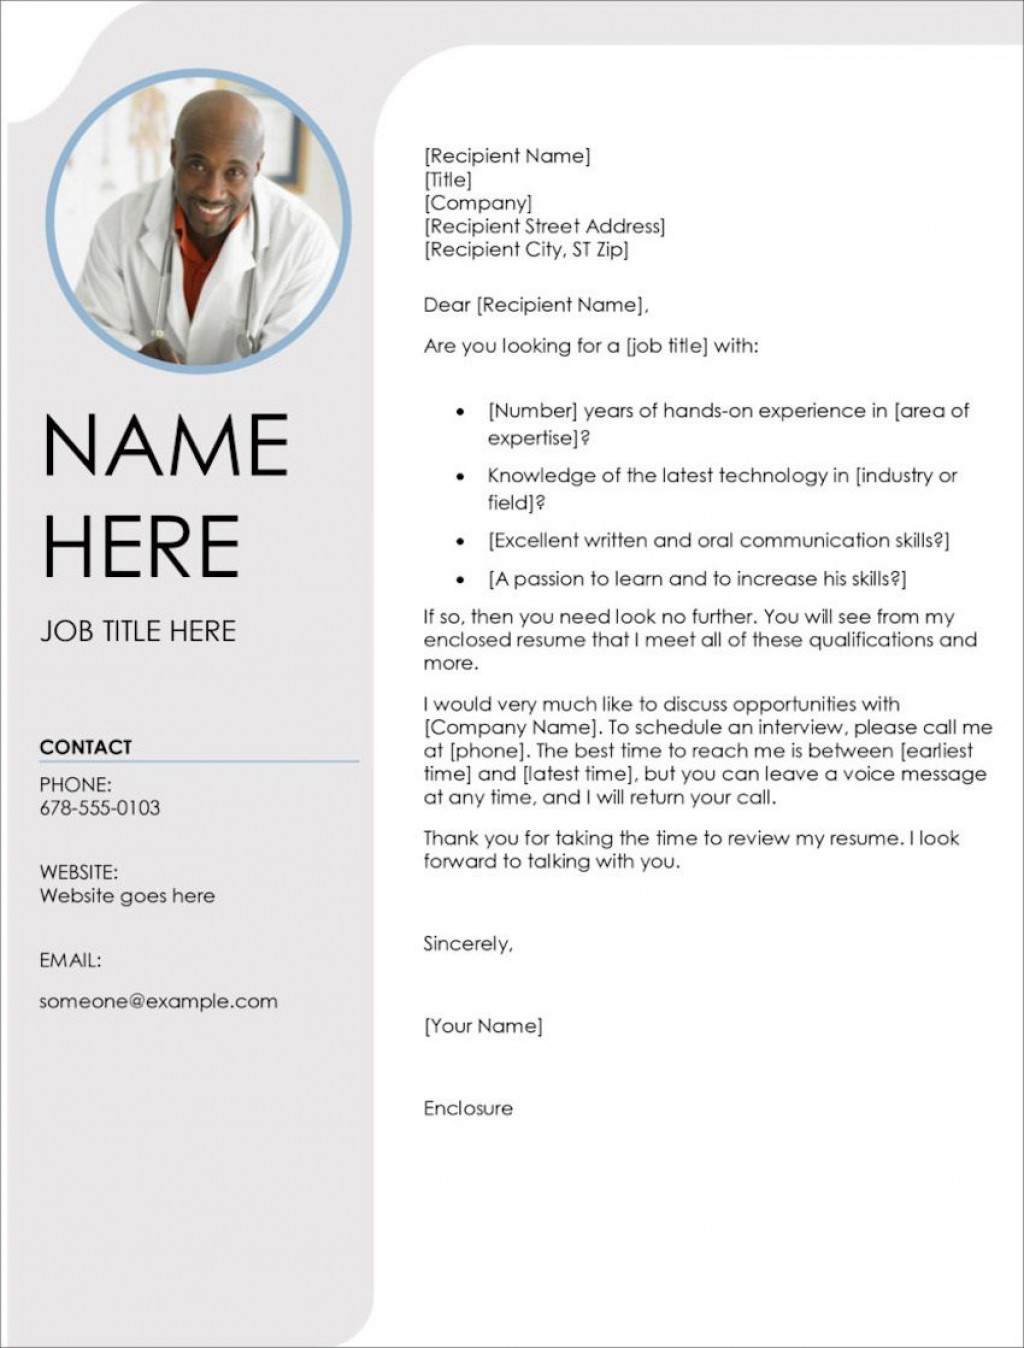 007 Archaicawful Microsoft Cover Letter Template Download Highest Quality  Word FreeLarge